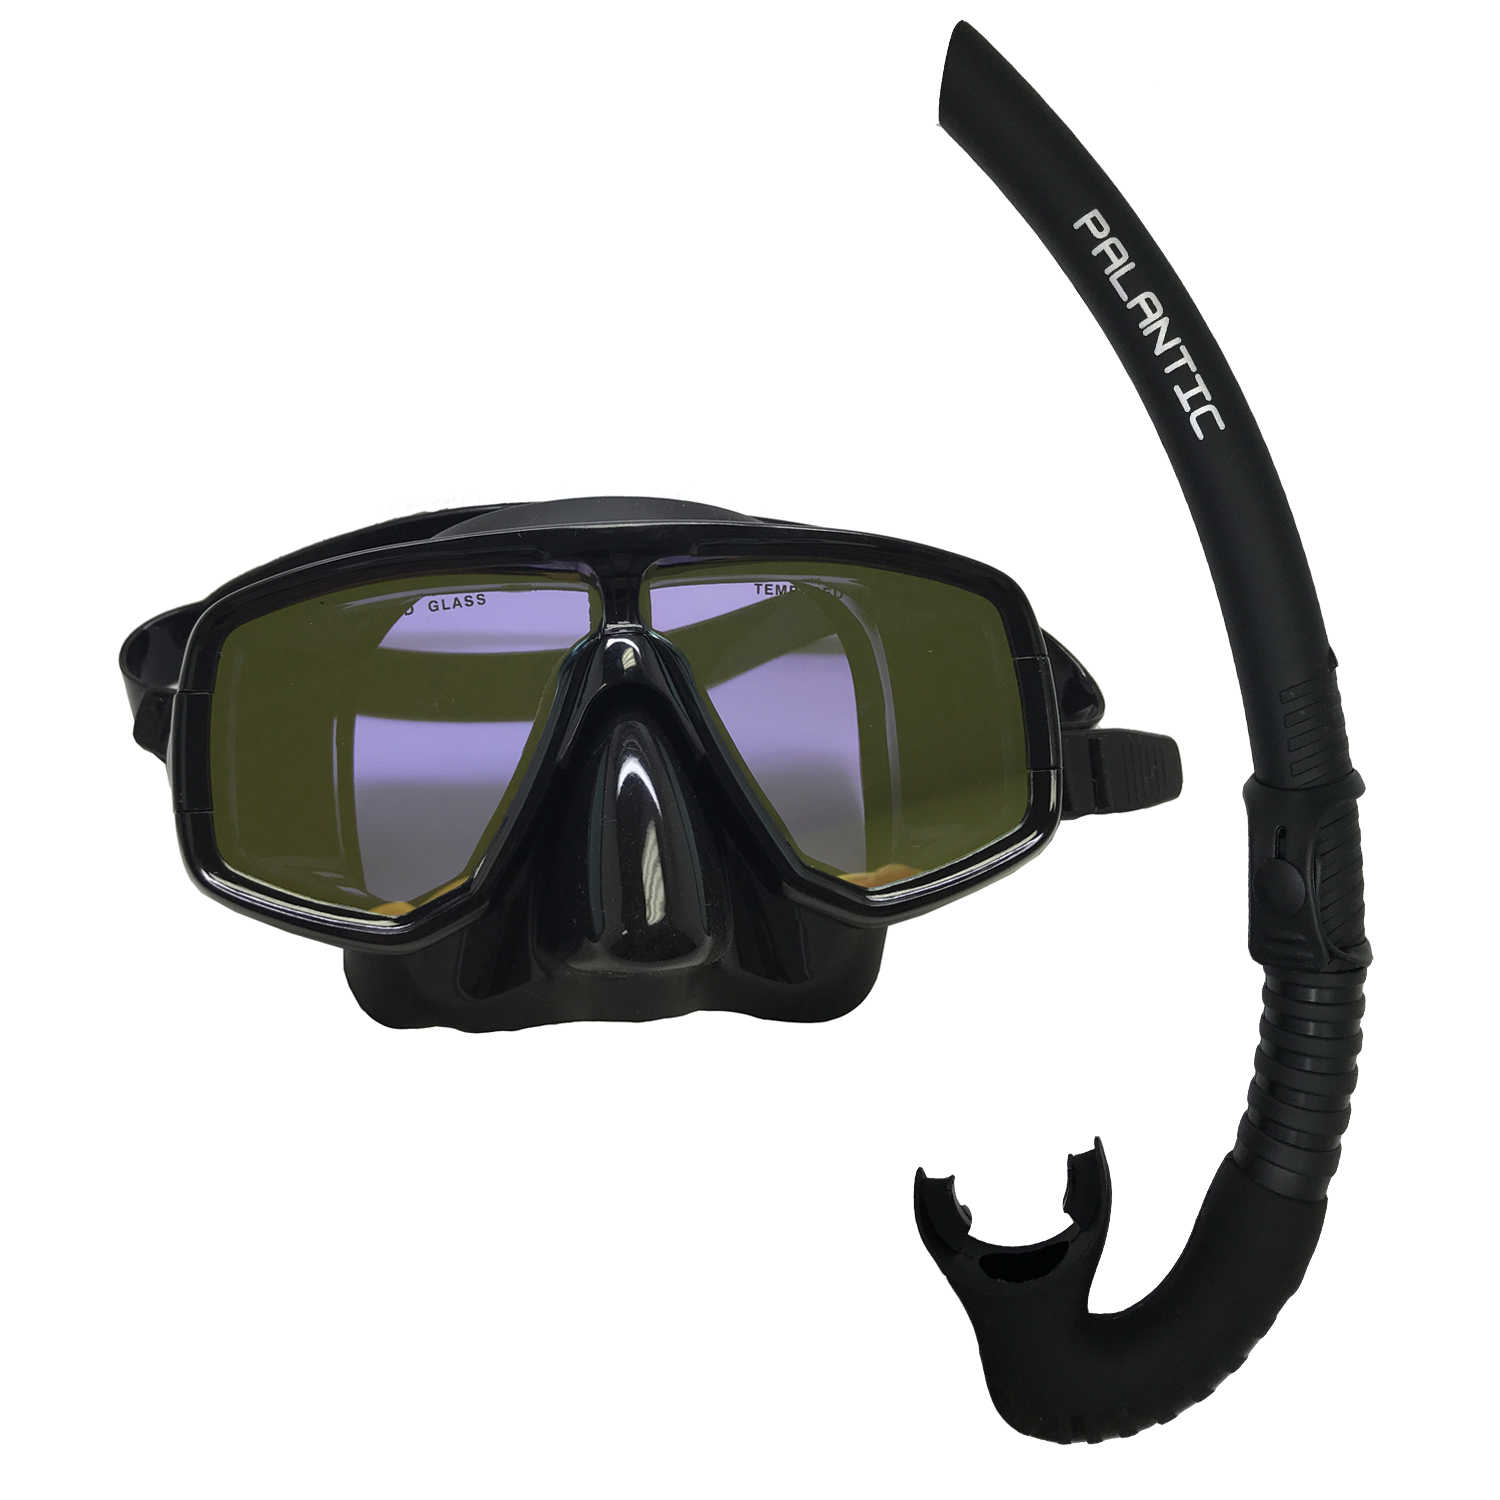 Scuba Choice Dive Mask With Yellow Mirror Coated Lense + Black Snorkel Combo by Scuba Choice